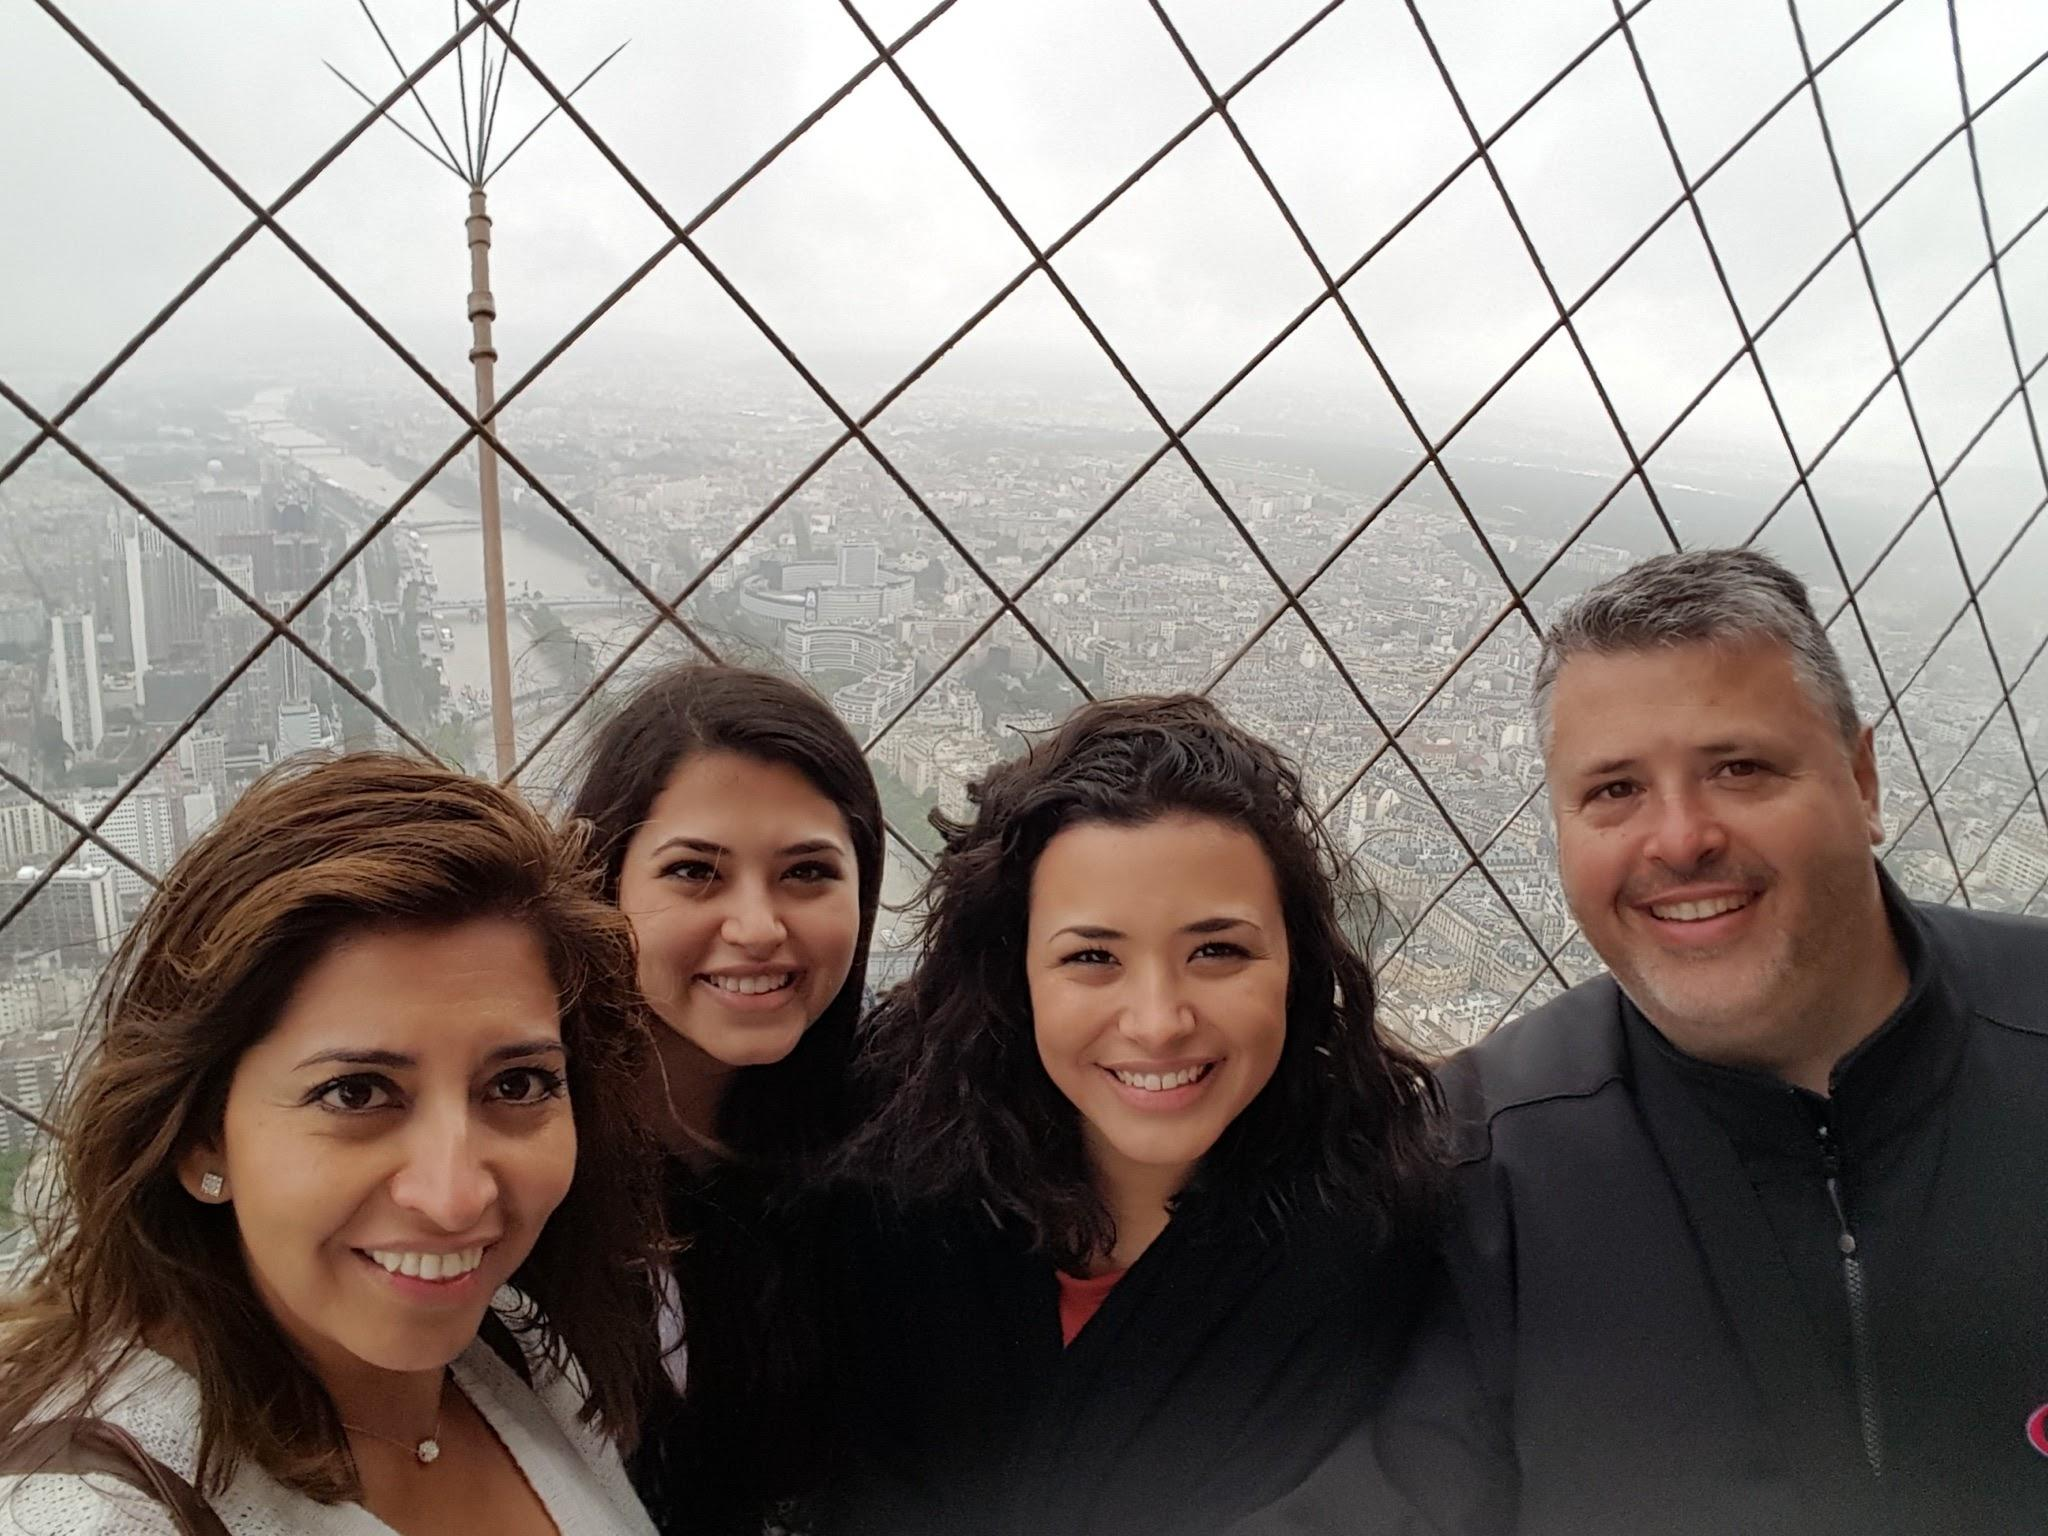 On Top of the Eiffel Tower in Paris with Family